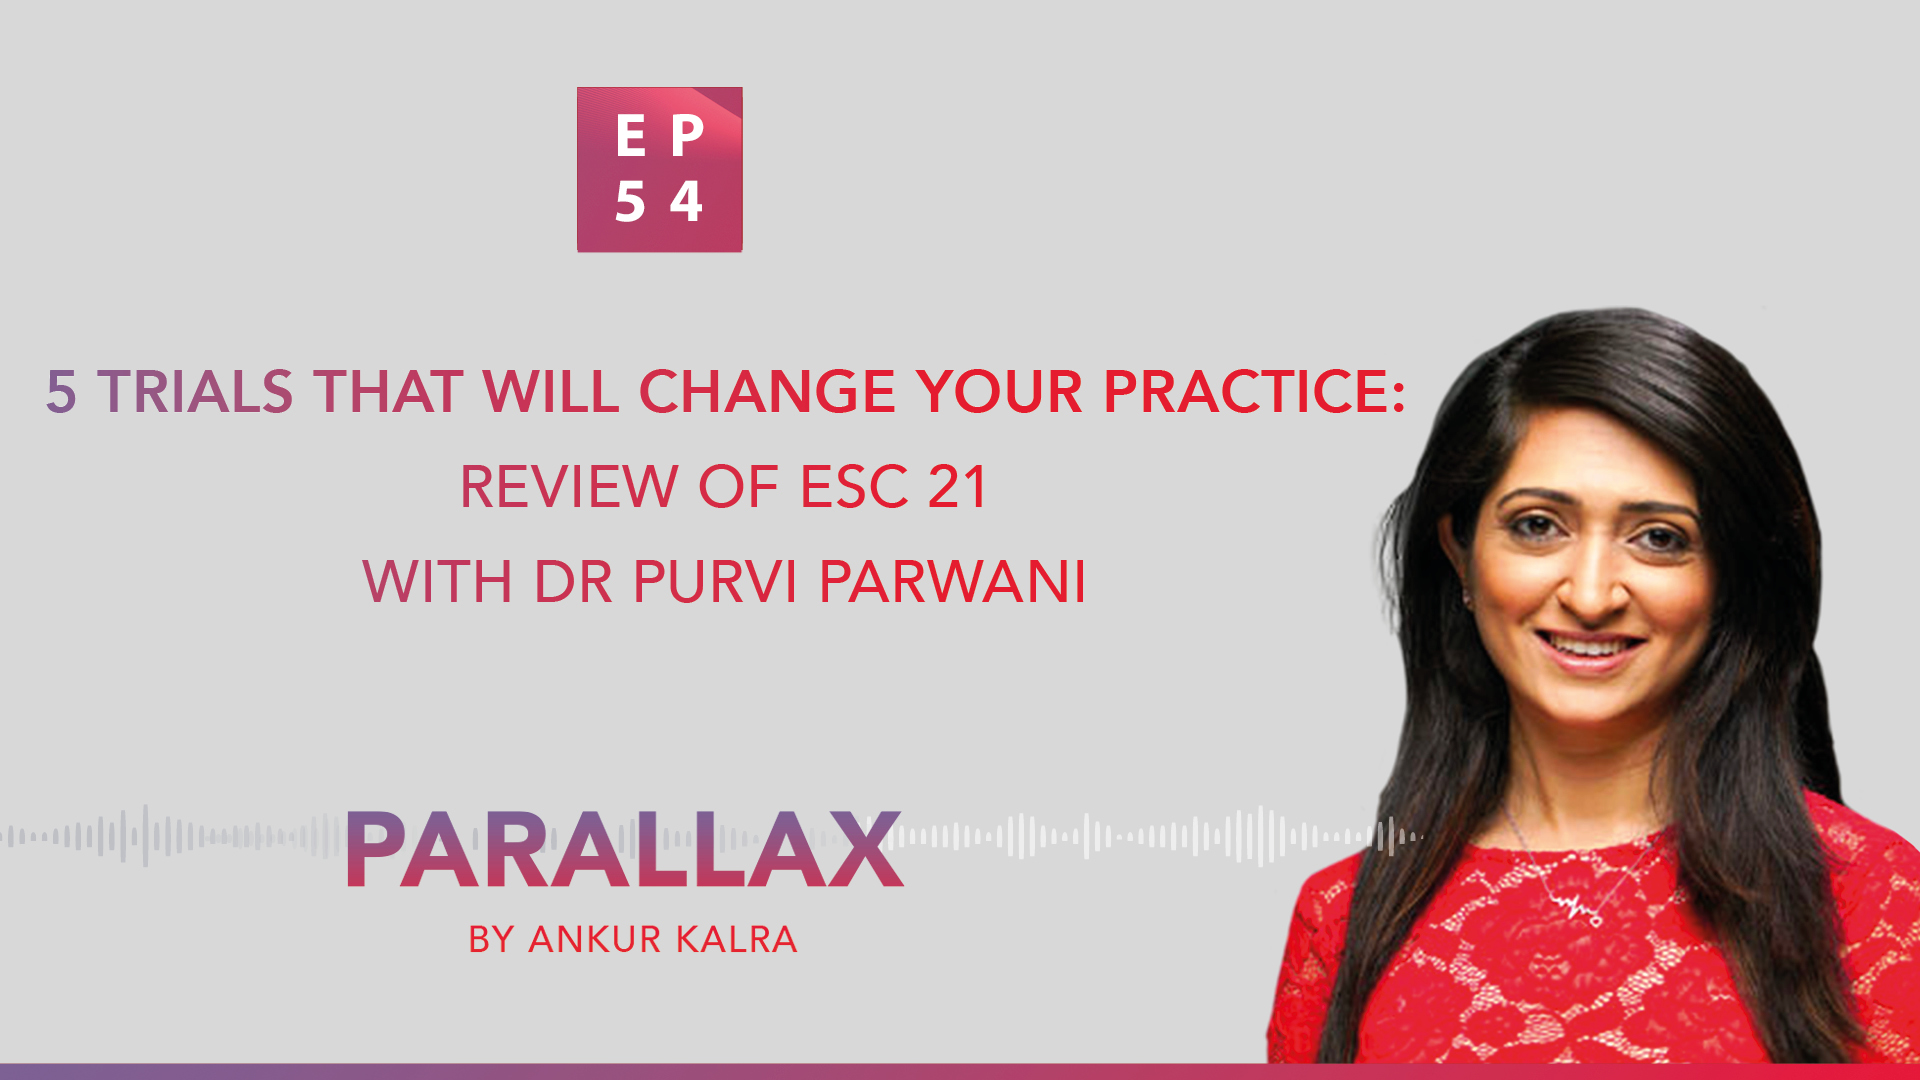 EP 54: 5 Trials that will change your practice: Review of ESC 21 with Dr Purvi Parwani